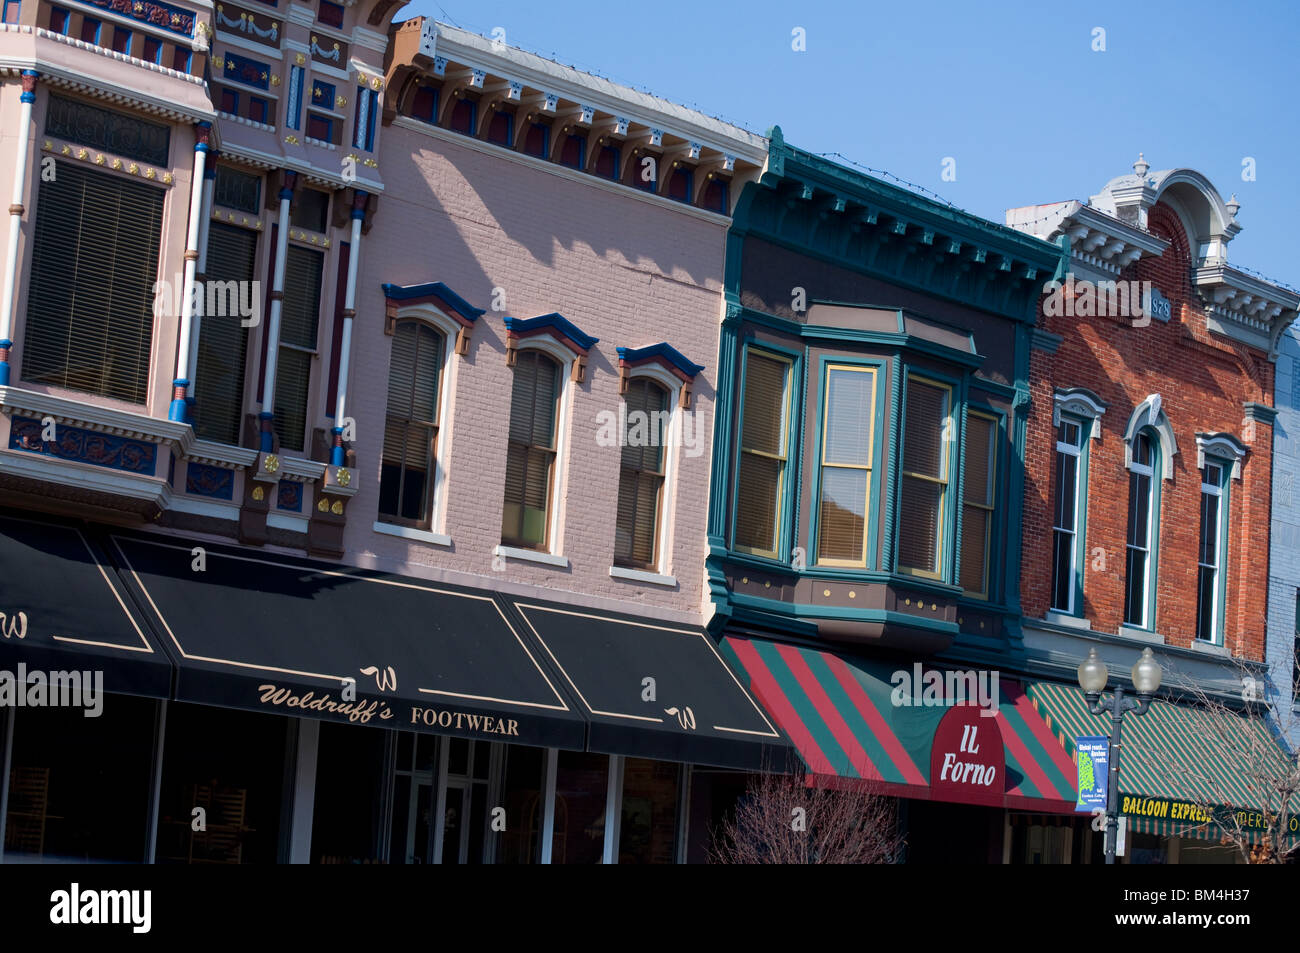 Shops in the historic buildings of downtown Goshen, Indiana. - Stock Image